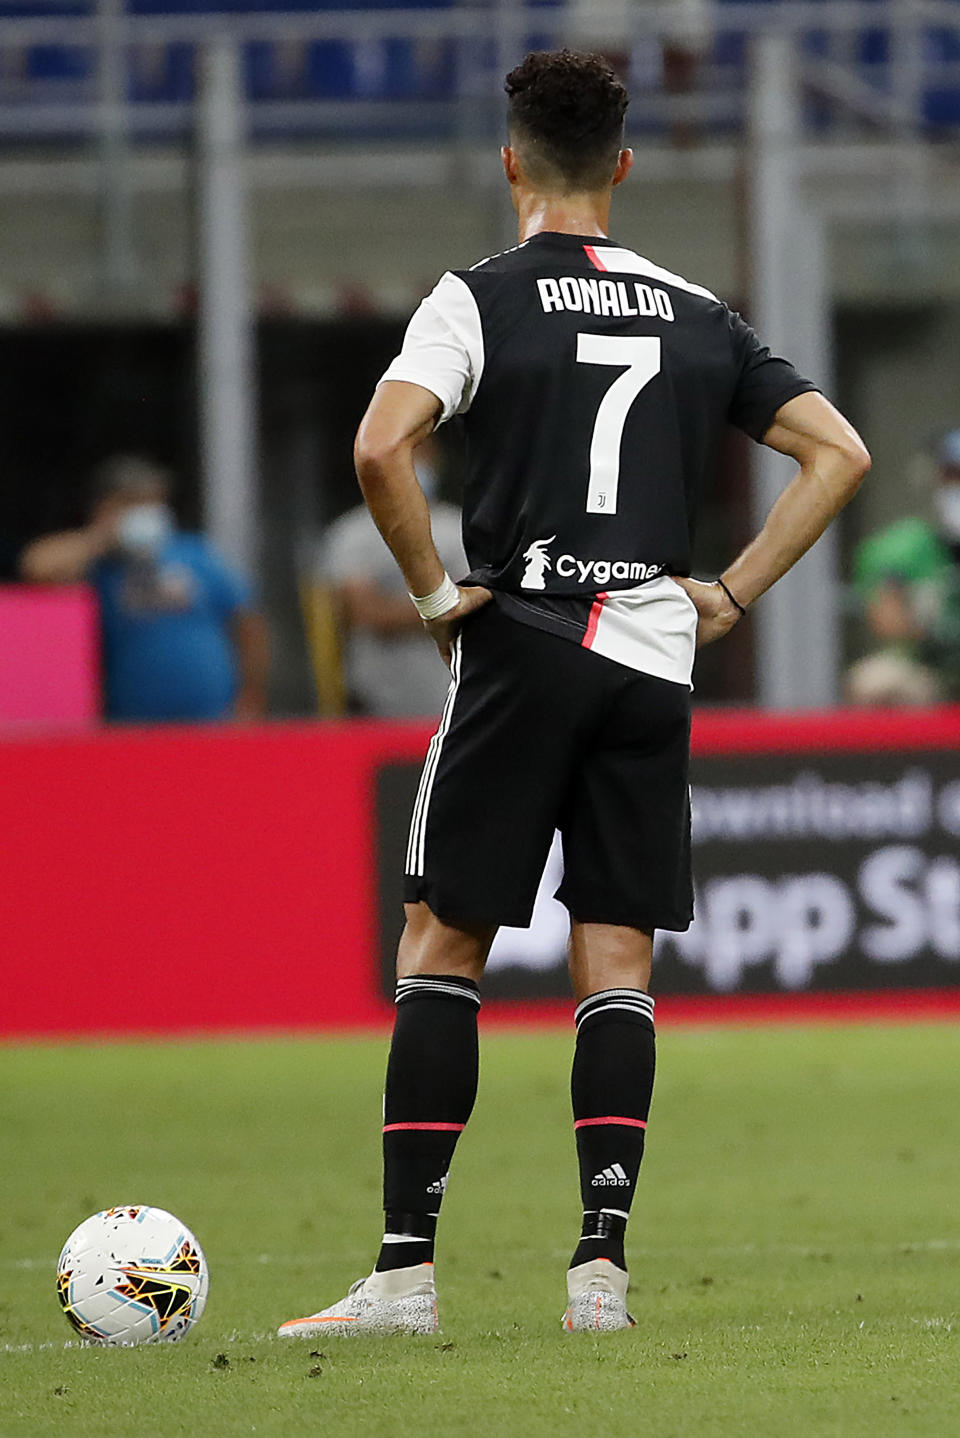 Juventus' Cristiano Ronaldo, left, reacts after AC Milan's Ante Rebic scores against Juventus during the Serie A soccer match between AC Milan and Juventus at the San Siro stadium, in Milan, Italy, Tuesday, July 7, 2020. (AP Photo/Antonio Calanni)